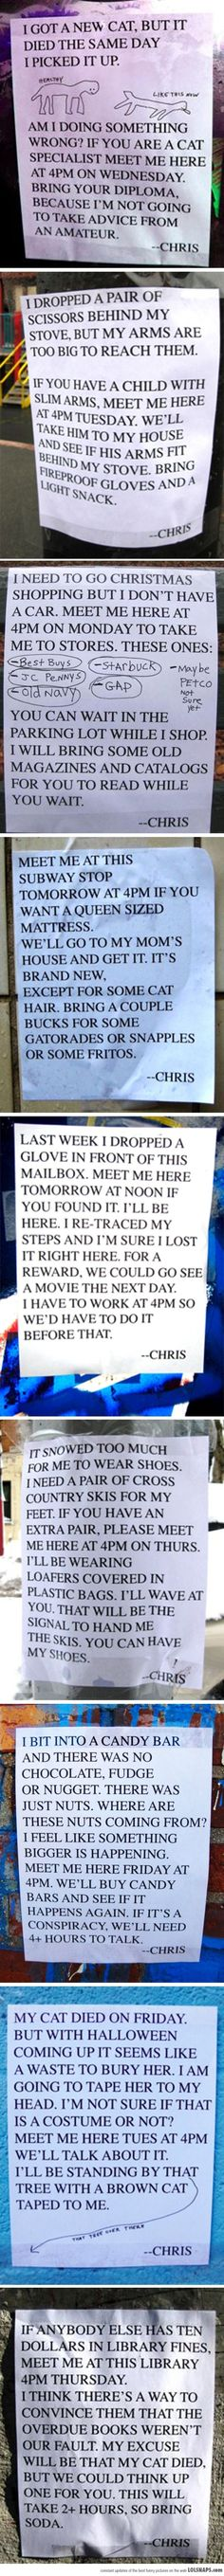 This guy named Chris leaves random flyers like these around his town. Hilariously AWESOME!